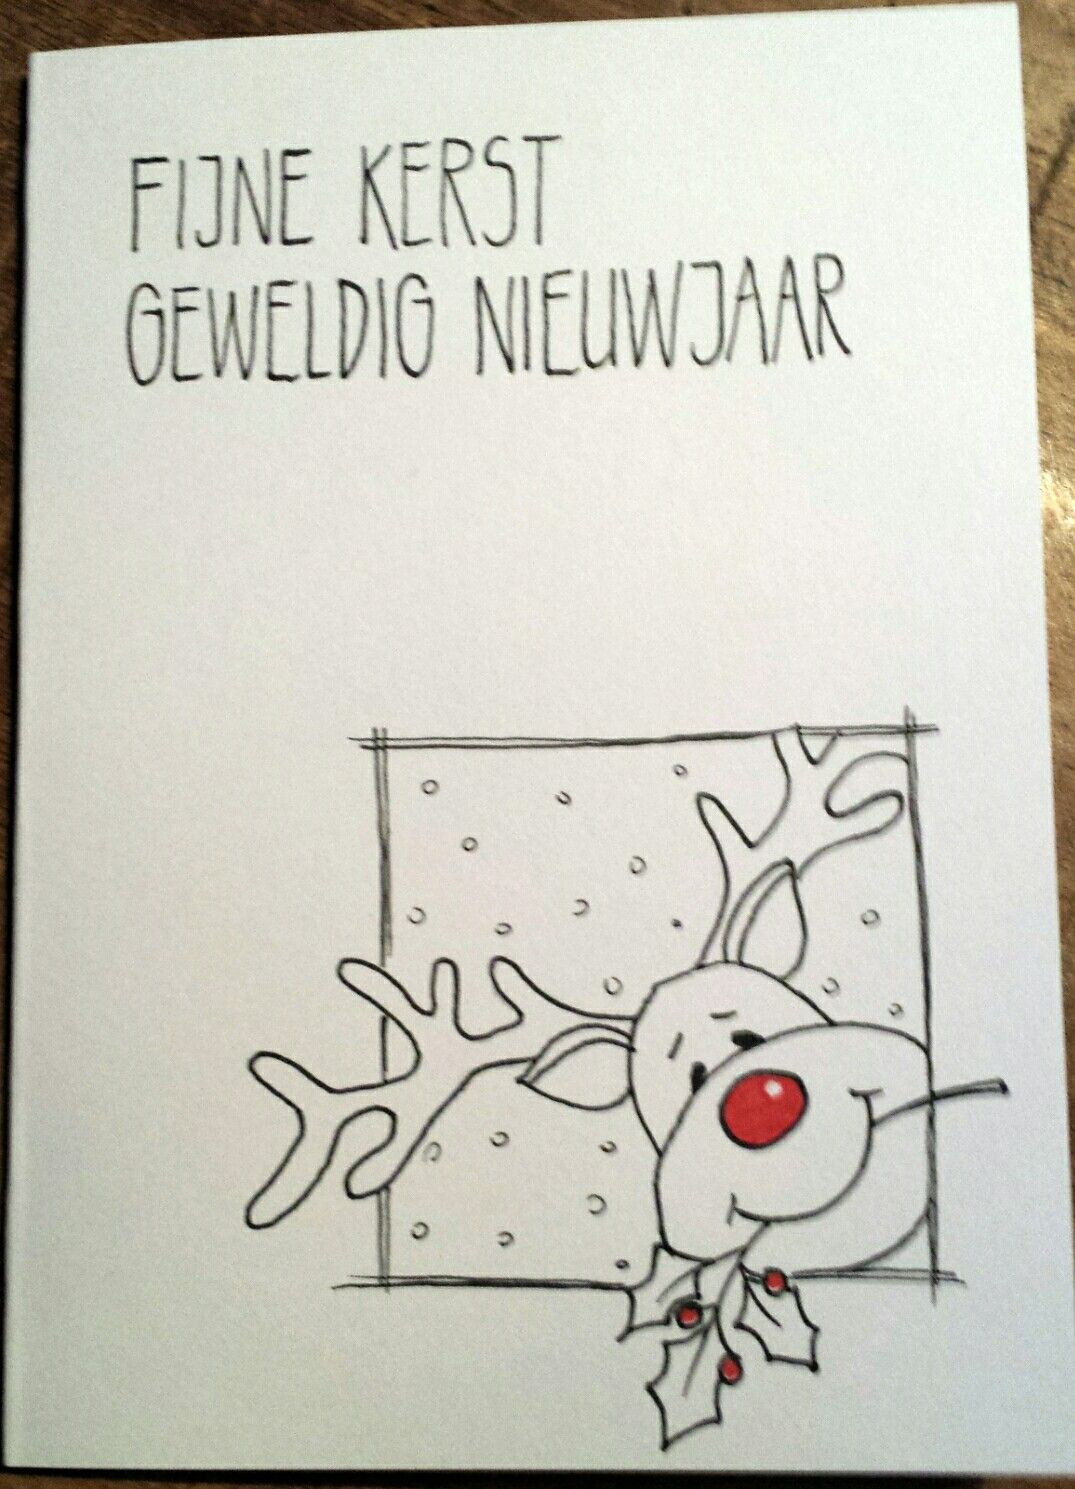 Pin by Isabel Oakes on Greeting cards | Pinterest | Christmas ...